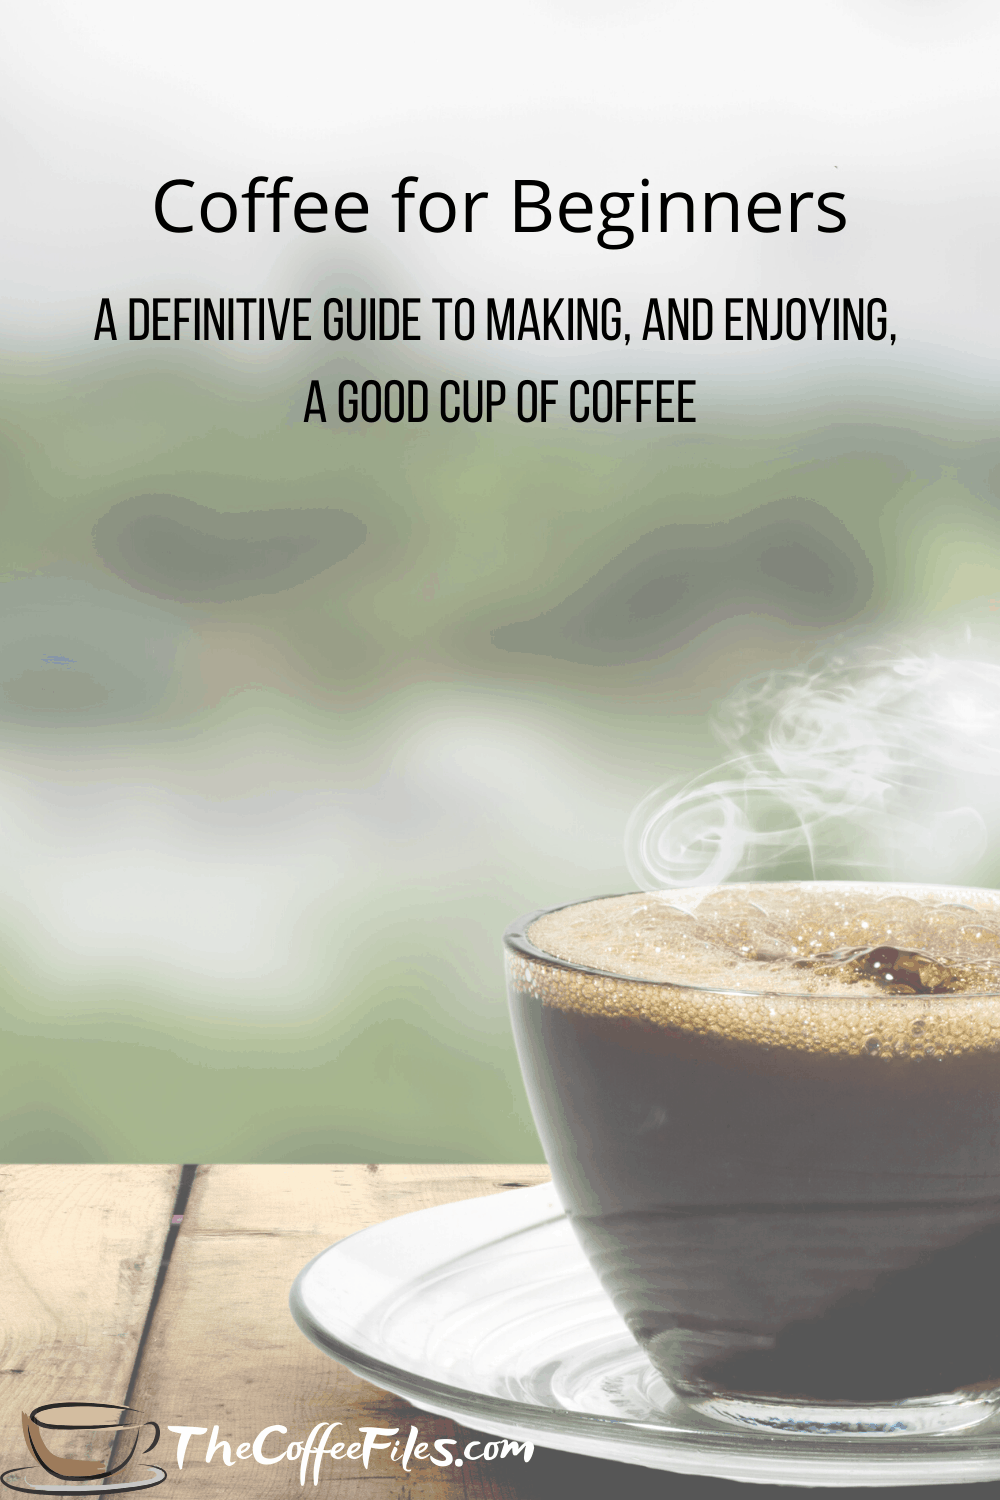 coffee for beginners - a definitive guide to making, and enjoying, a good cup of coffee